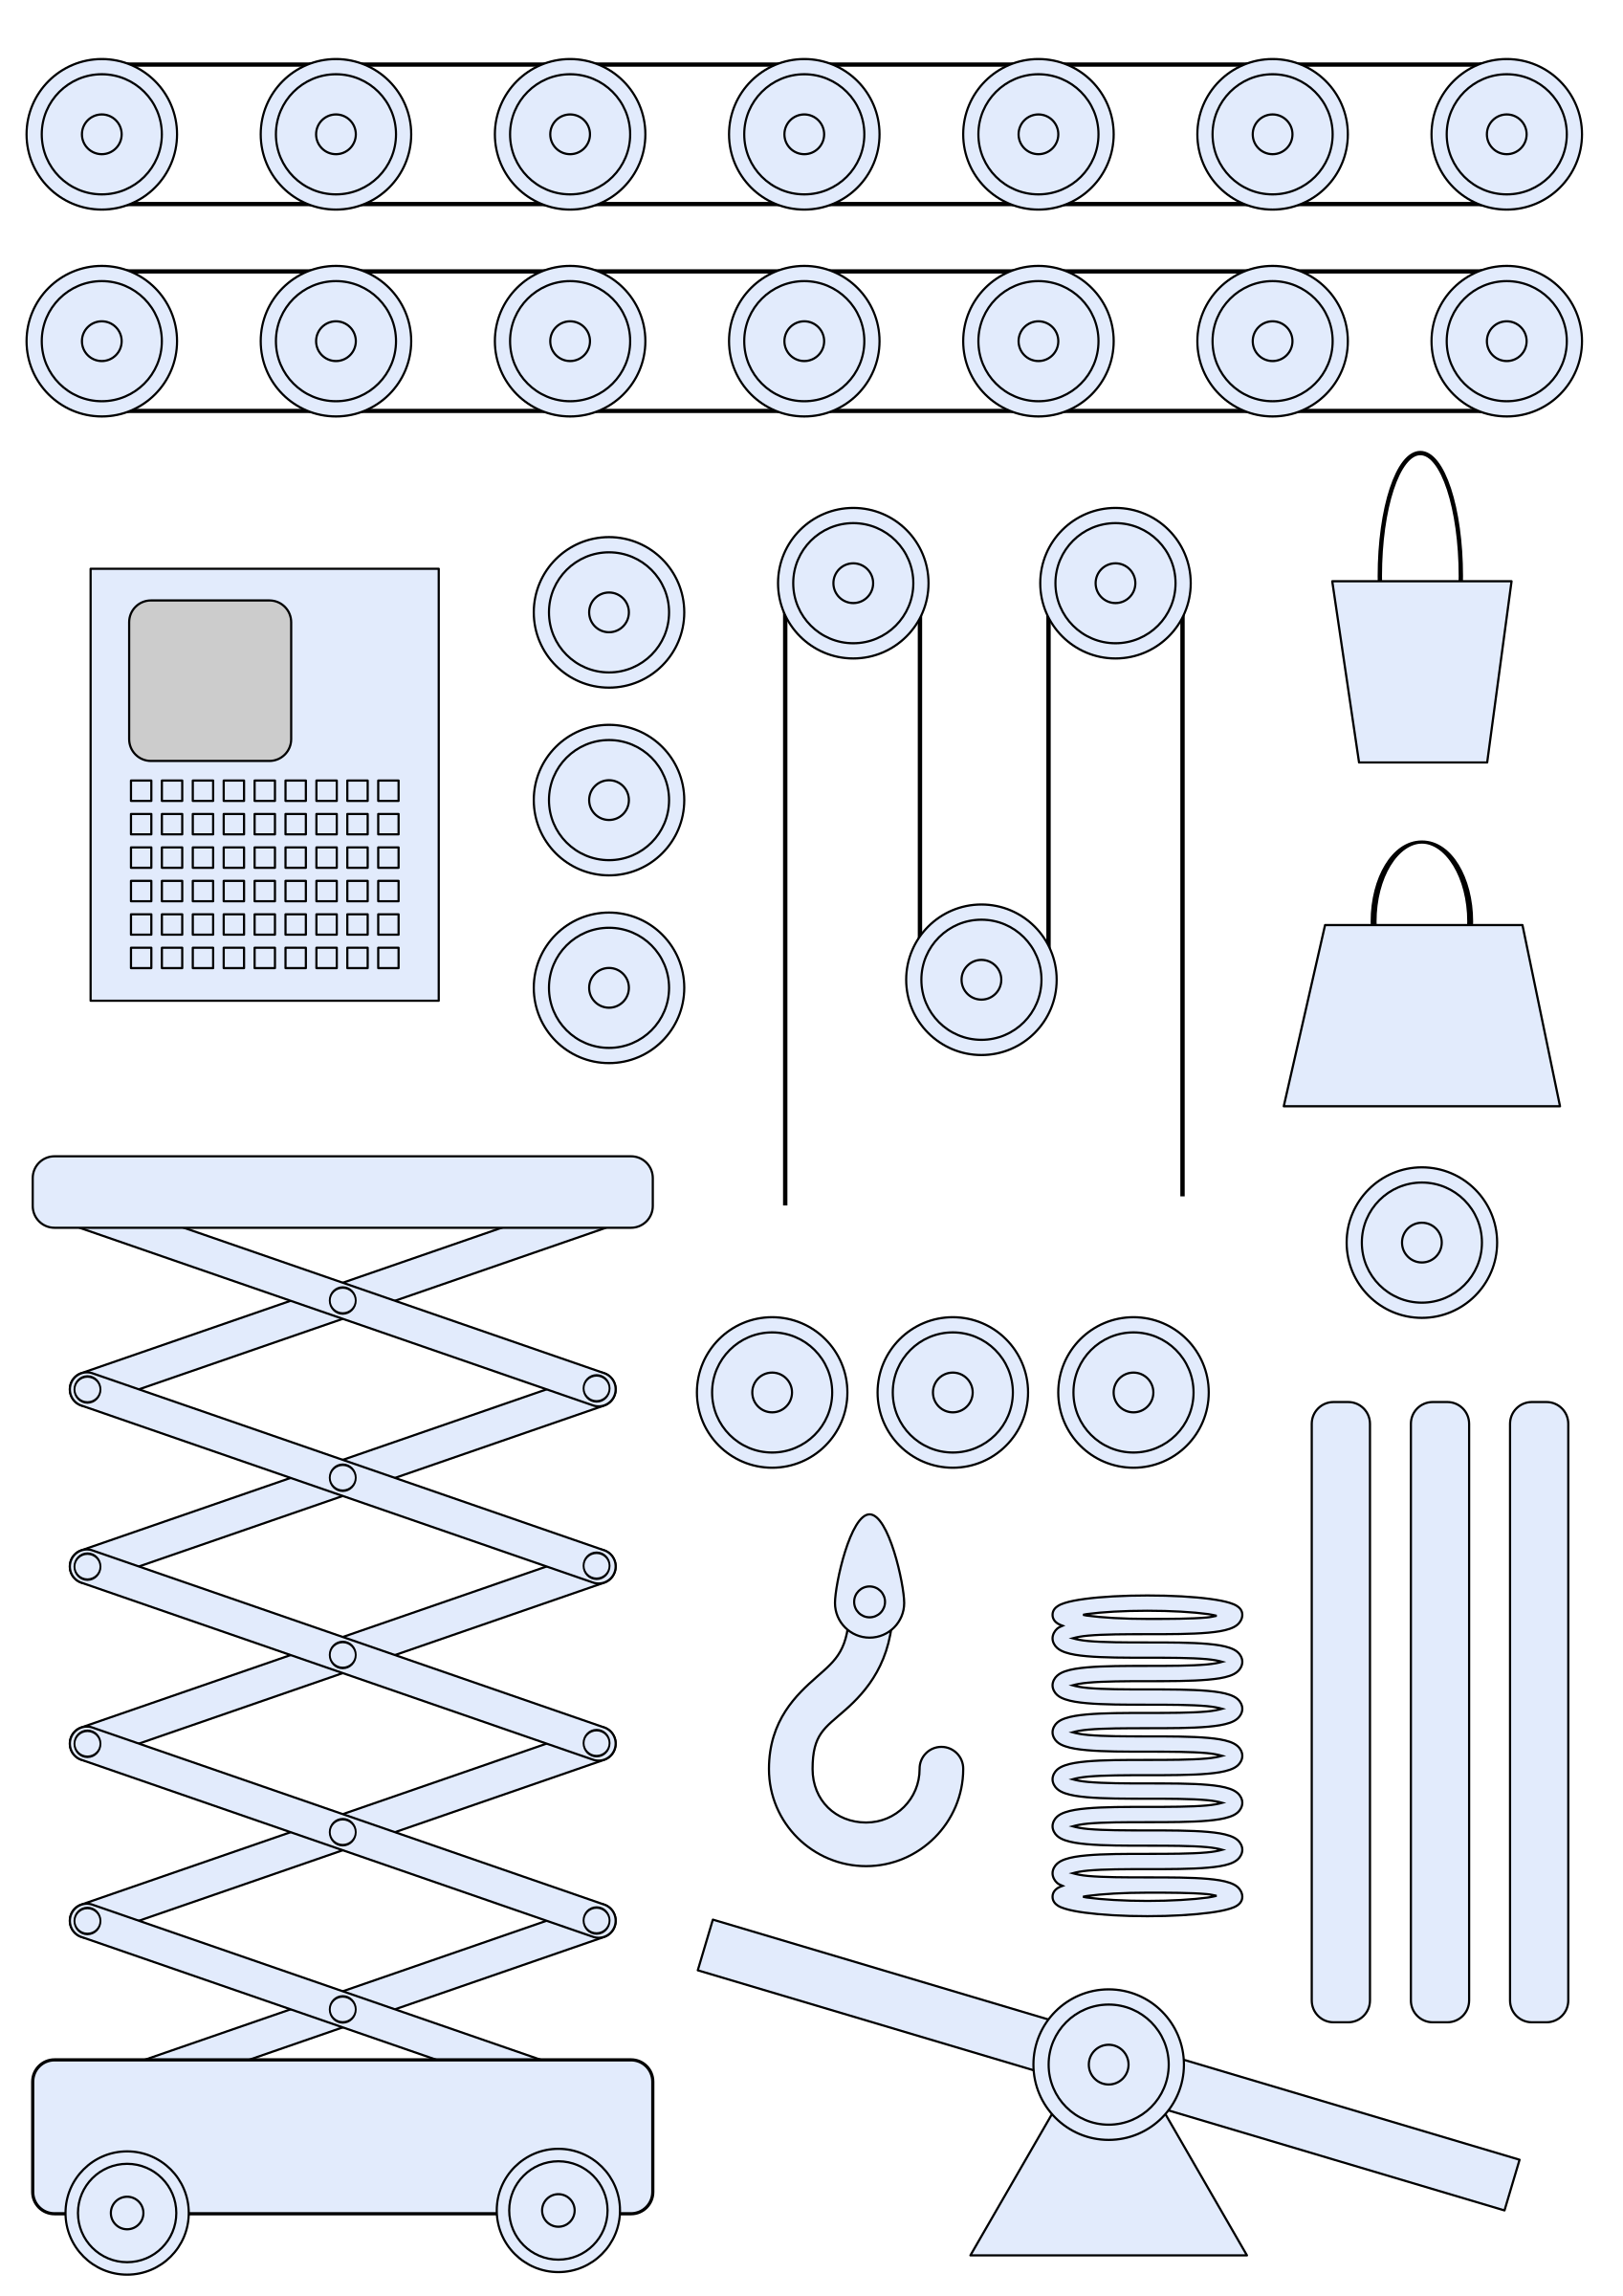 Factory symbols by spacefem